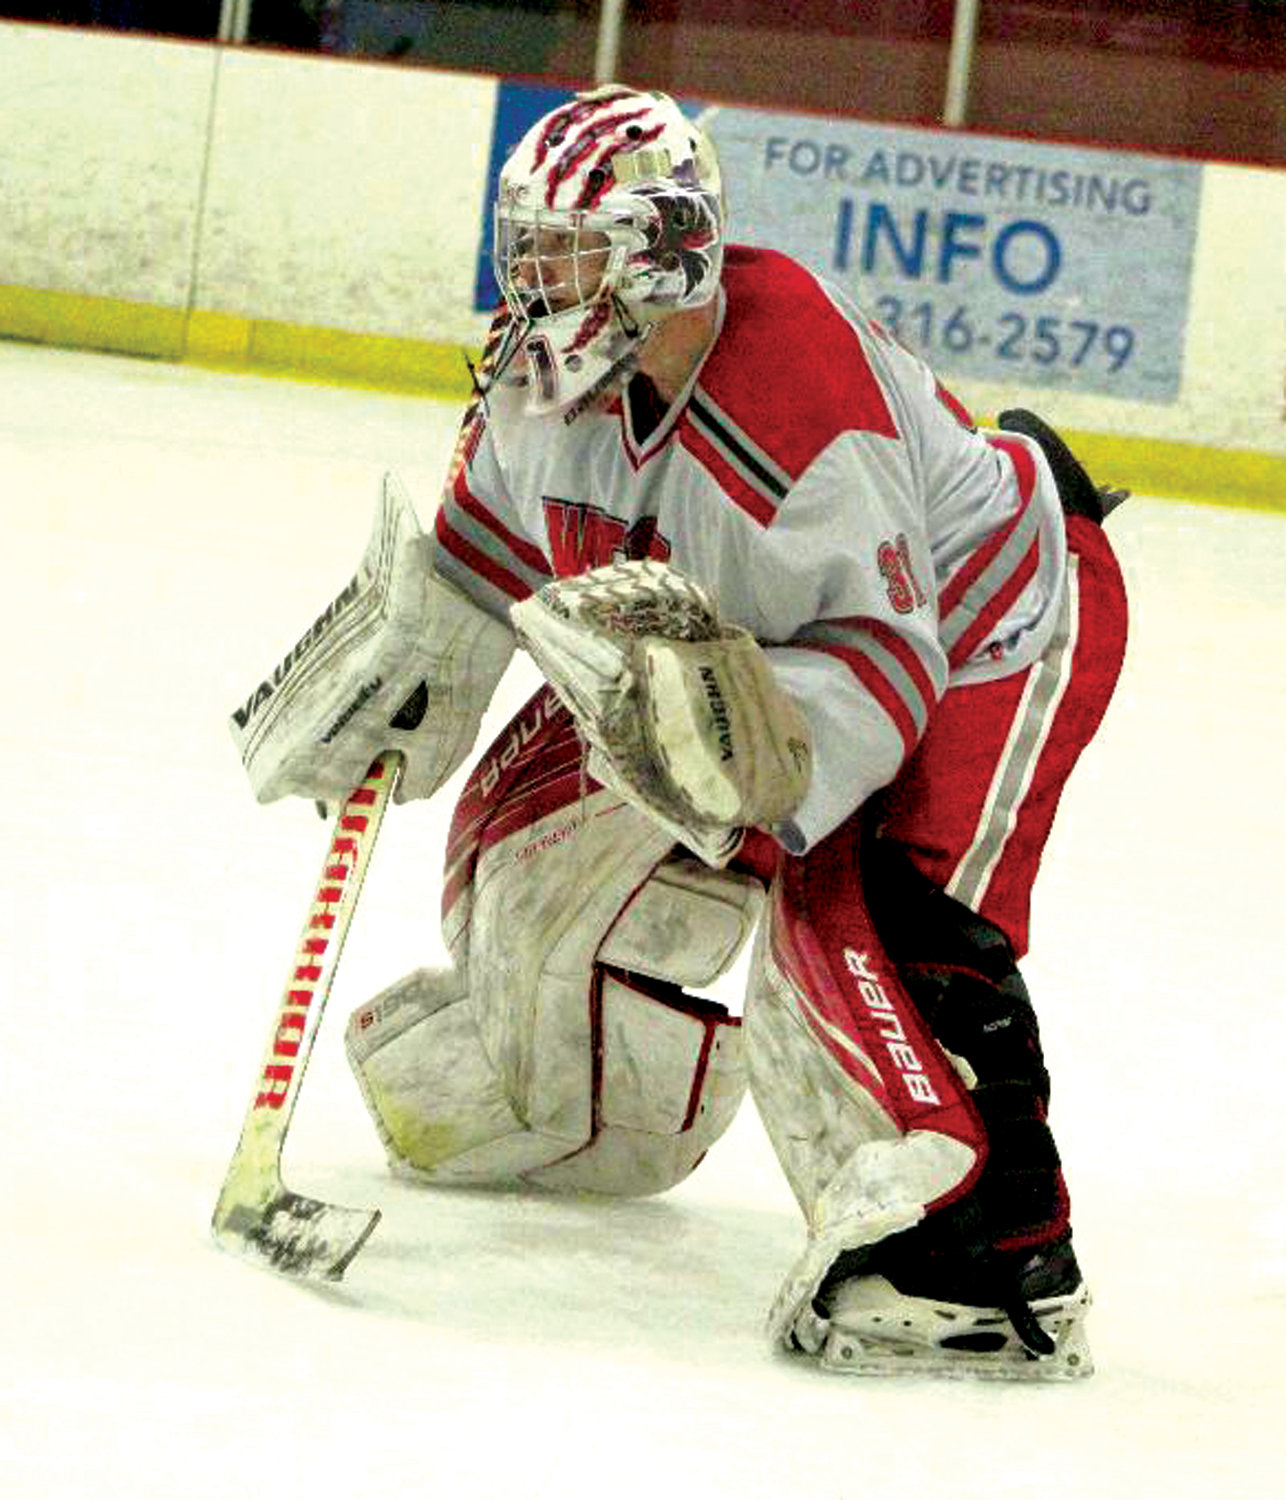 BETWEEN THE PIPES: West goalie Mathew Corrente.